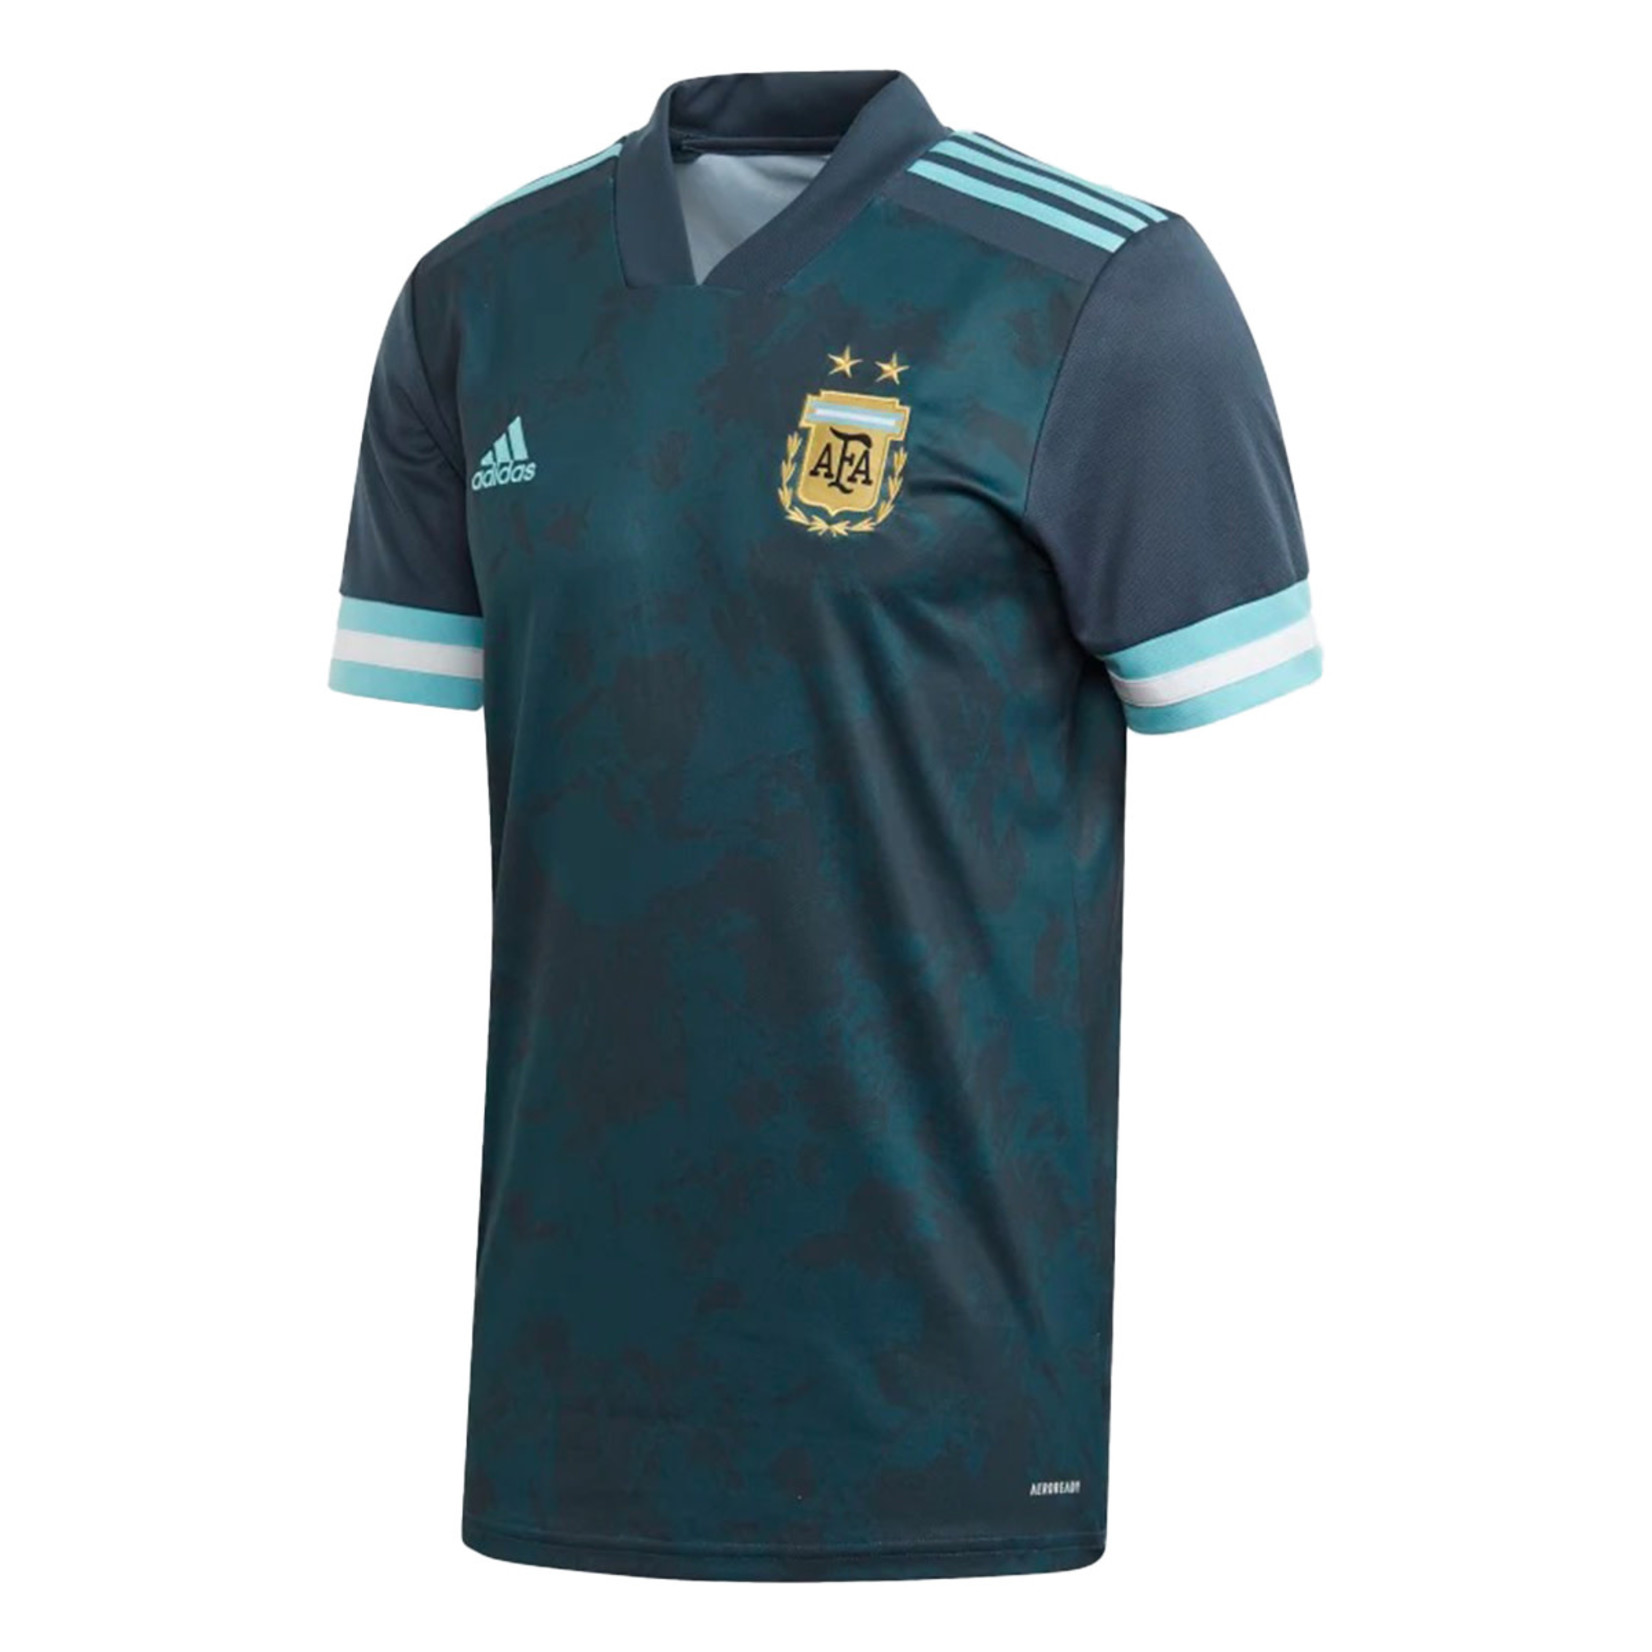 ADIDAS ARGENTINA 2020 AWAY JERSEY YOUTH